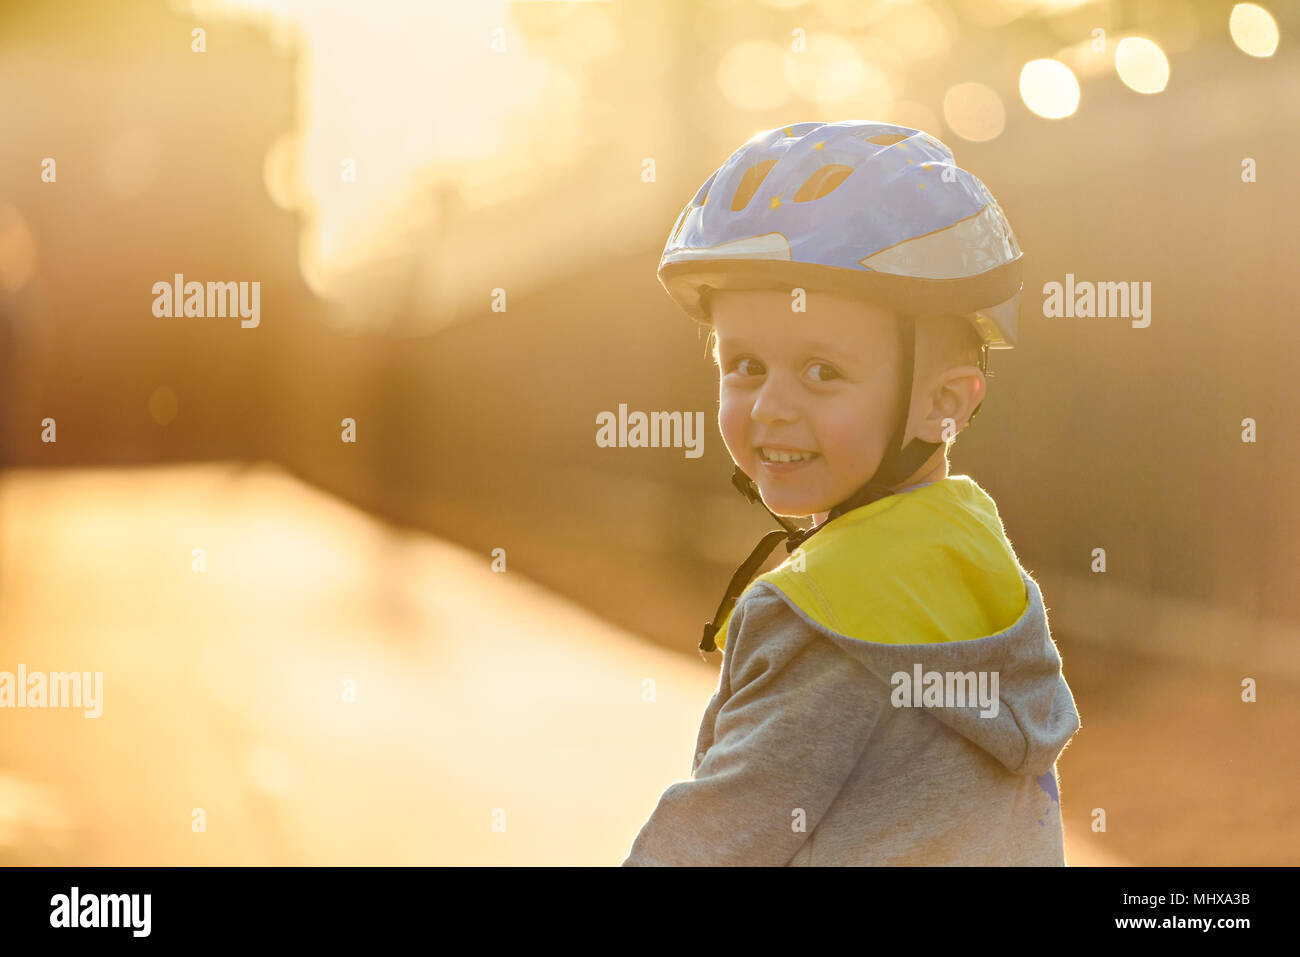 Smiling aussie boy wearing helmet and riding his bicycle a day in Glenelg, South Australia - Stock Image